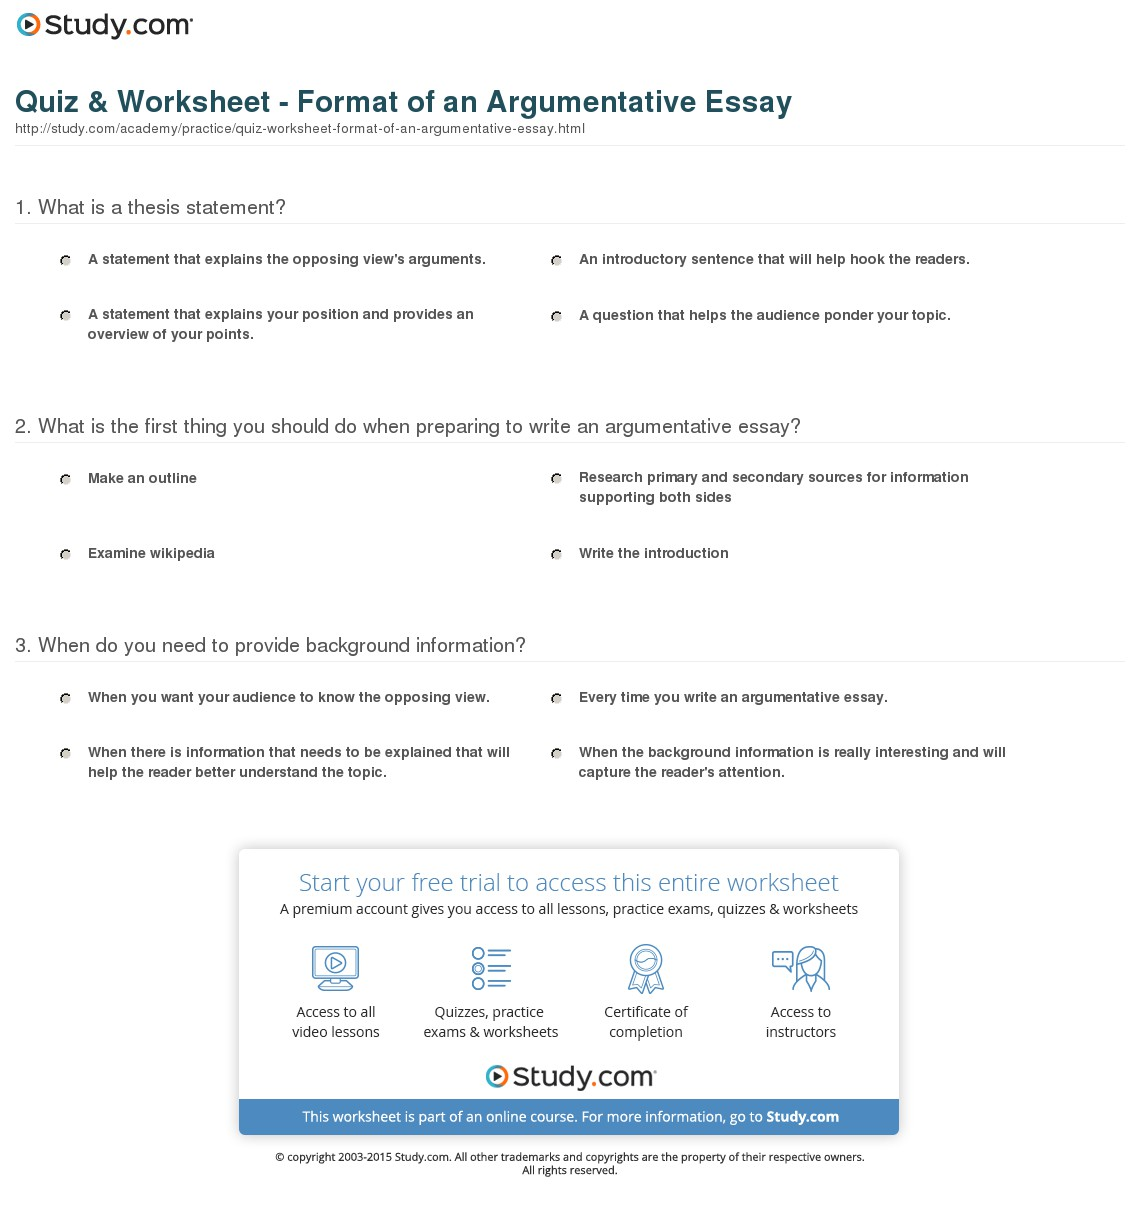 015 Argumentative Essay Format Quiz Worksheet Of An Best Outline Template Doc Example Mla Full